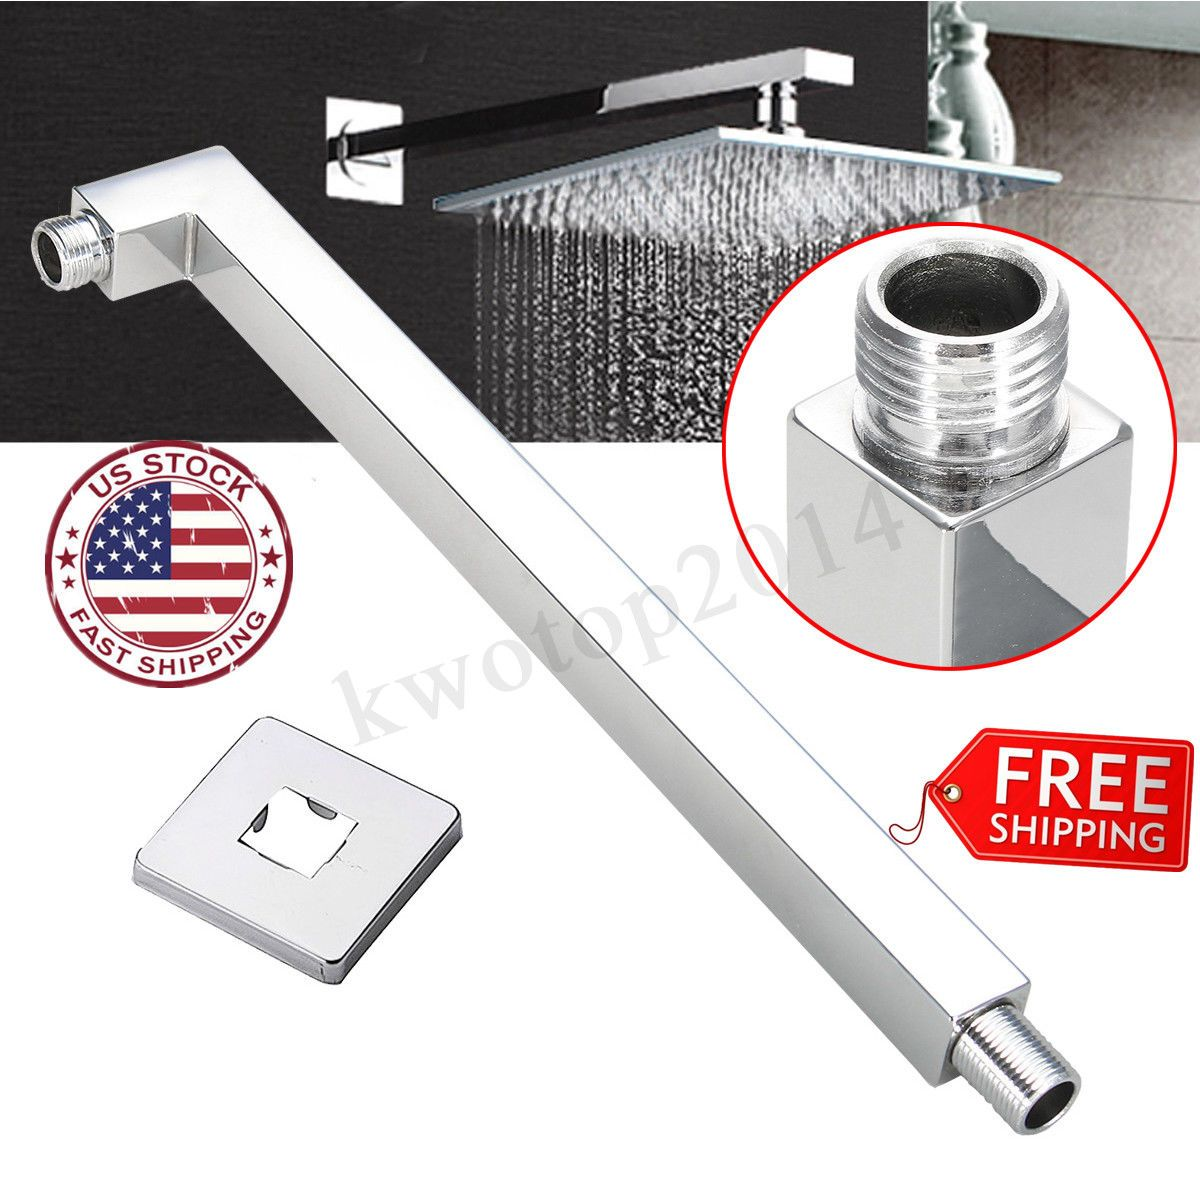 40cm Square Ceiling Rain Shower Head Chrome Wall Mounted Extension Arm 16 Showers Ideas Of Showers Show Rain Shower Head Shower Heads Walk In Shower Kits